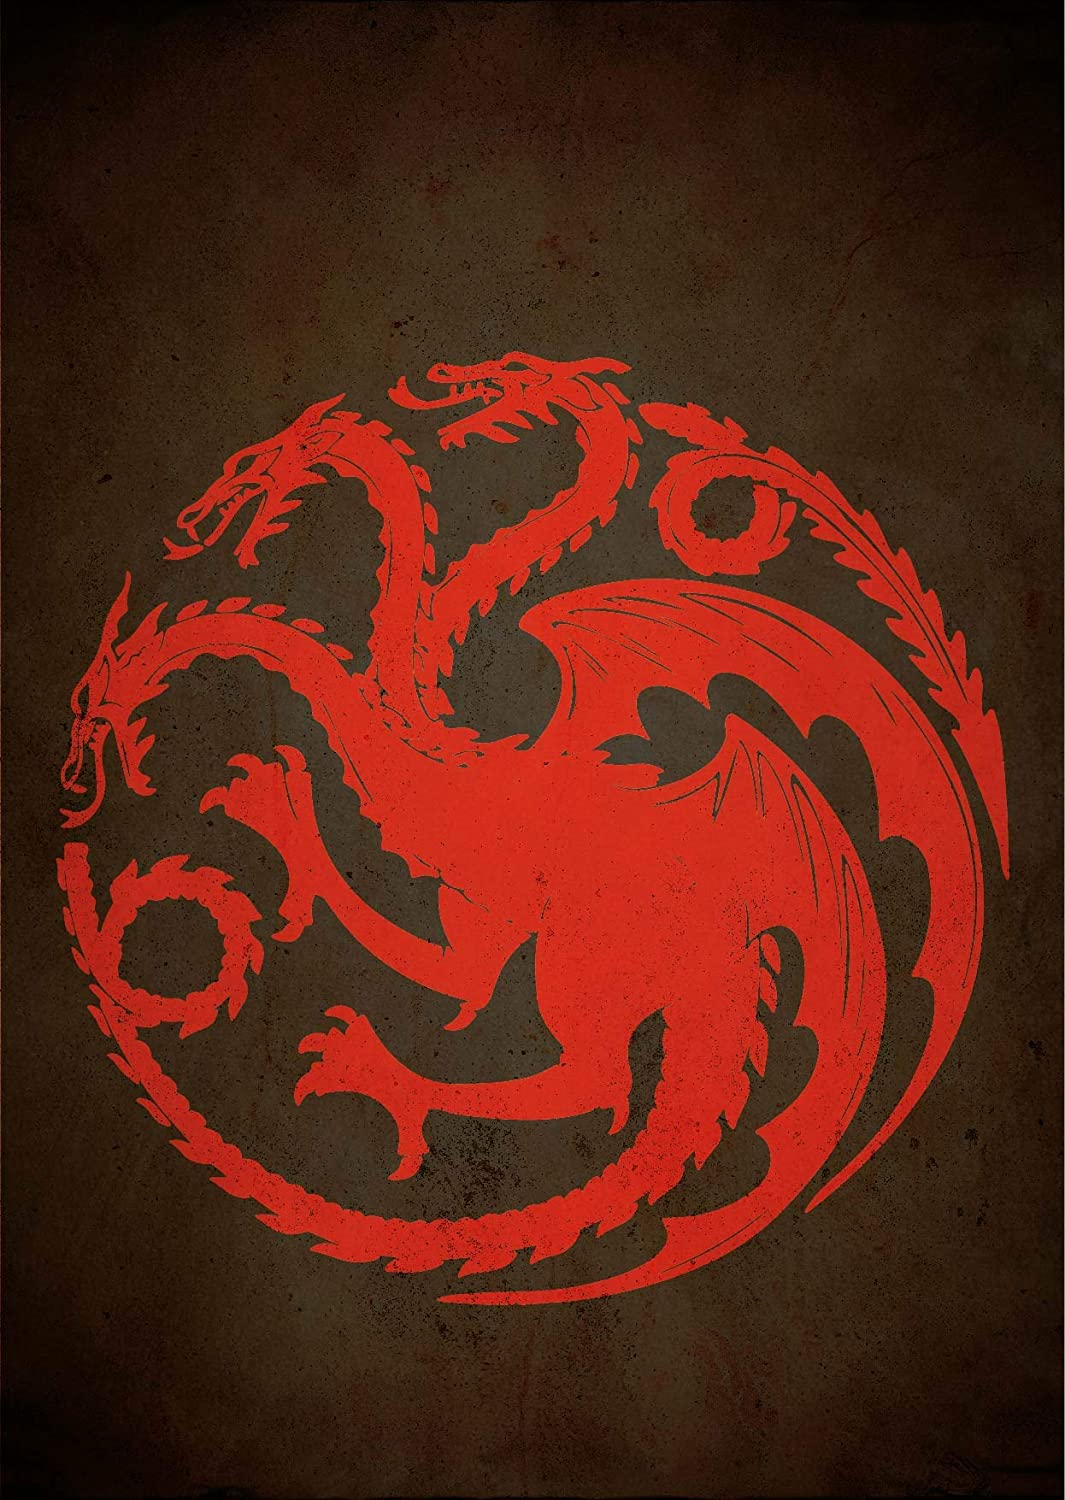 Amazon Com Game Of Thrones House Symbols Minimalist Poster House Targaryen Print Got Art Poster Fire And Blood Guess Quiz Test Houses Words Mottos Banners Artwork Home Decor Wall Hanging Cool Gift Handmade